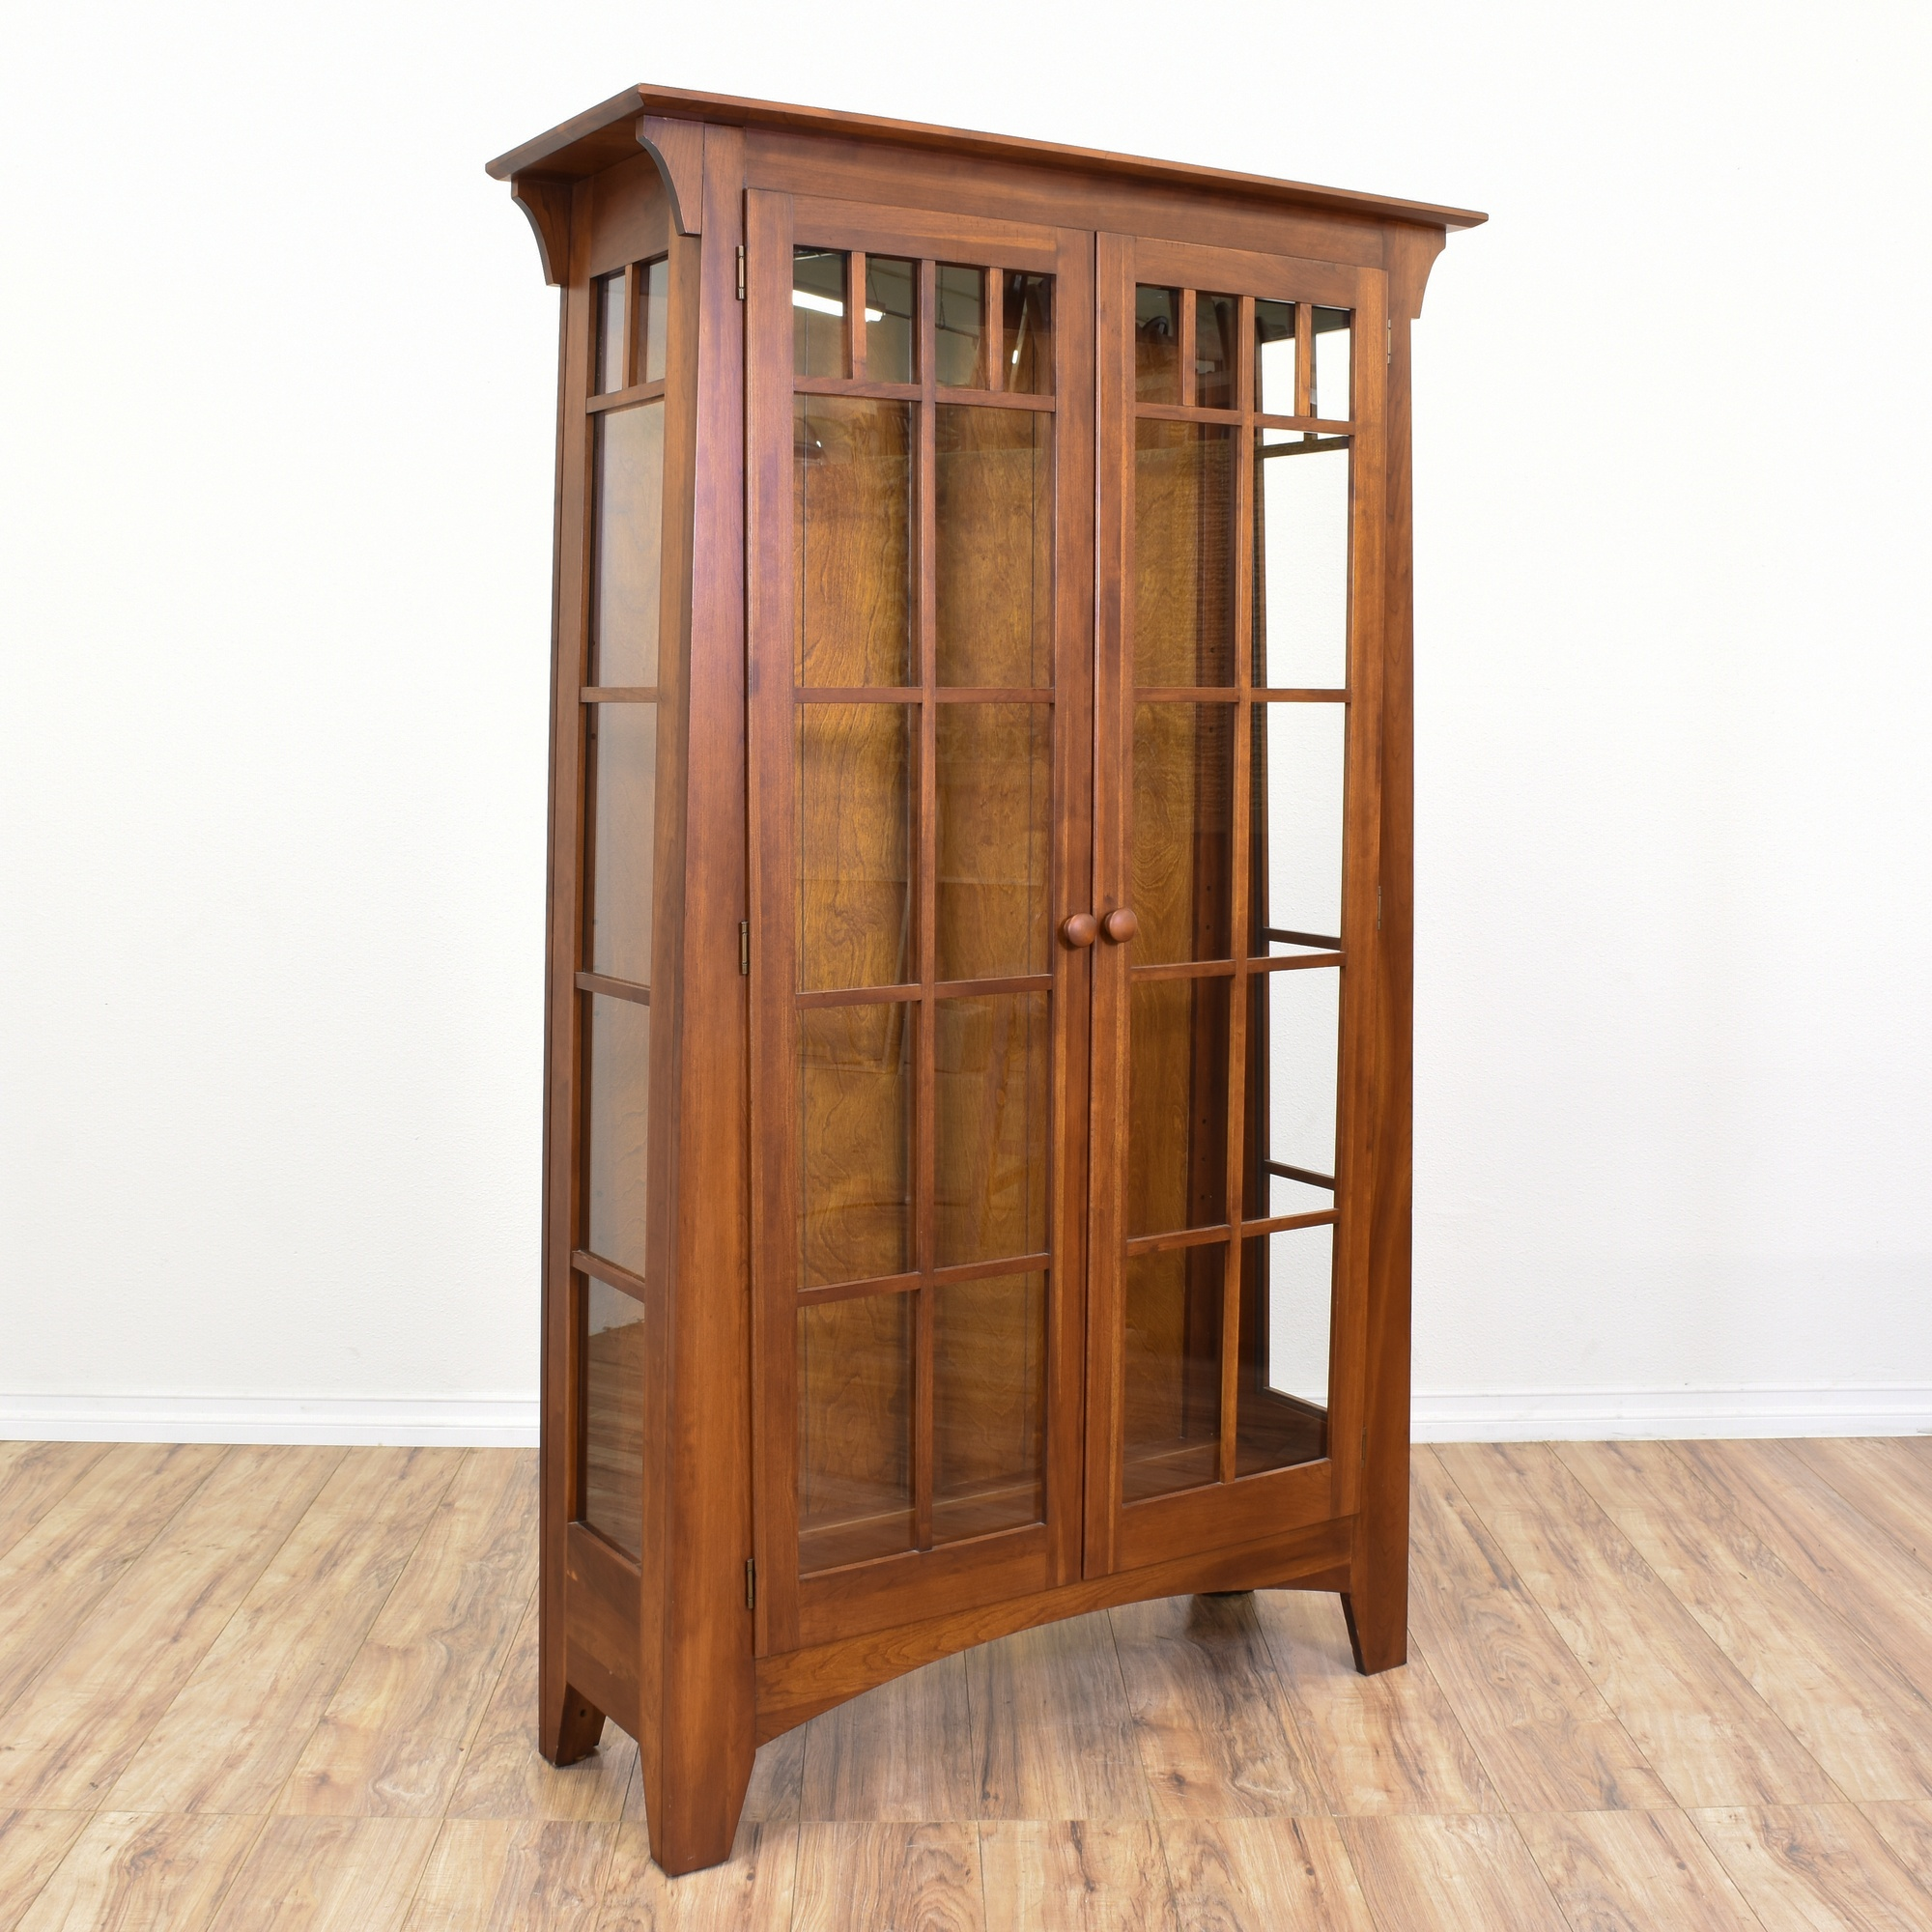 Quot Ethan Allen Quot Mission Style Armoire Display Case